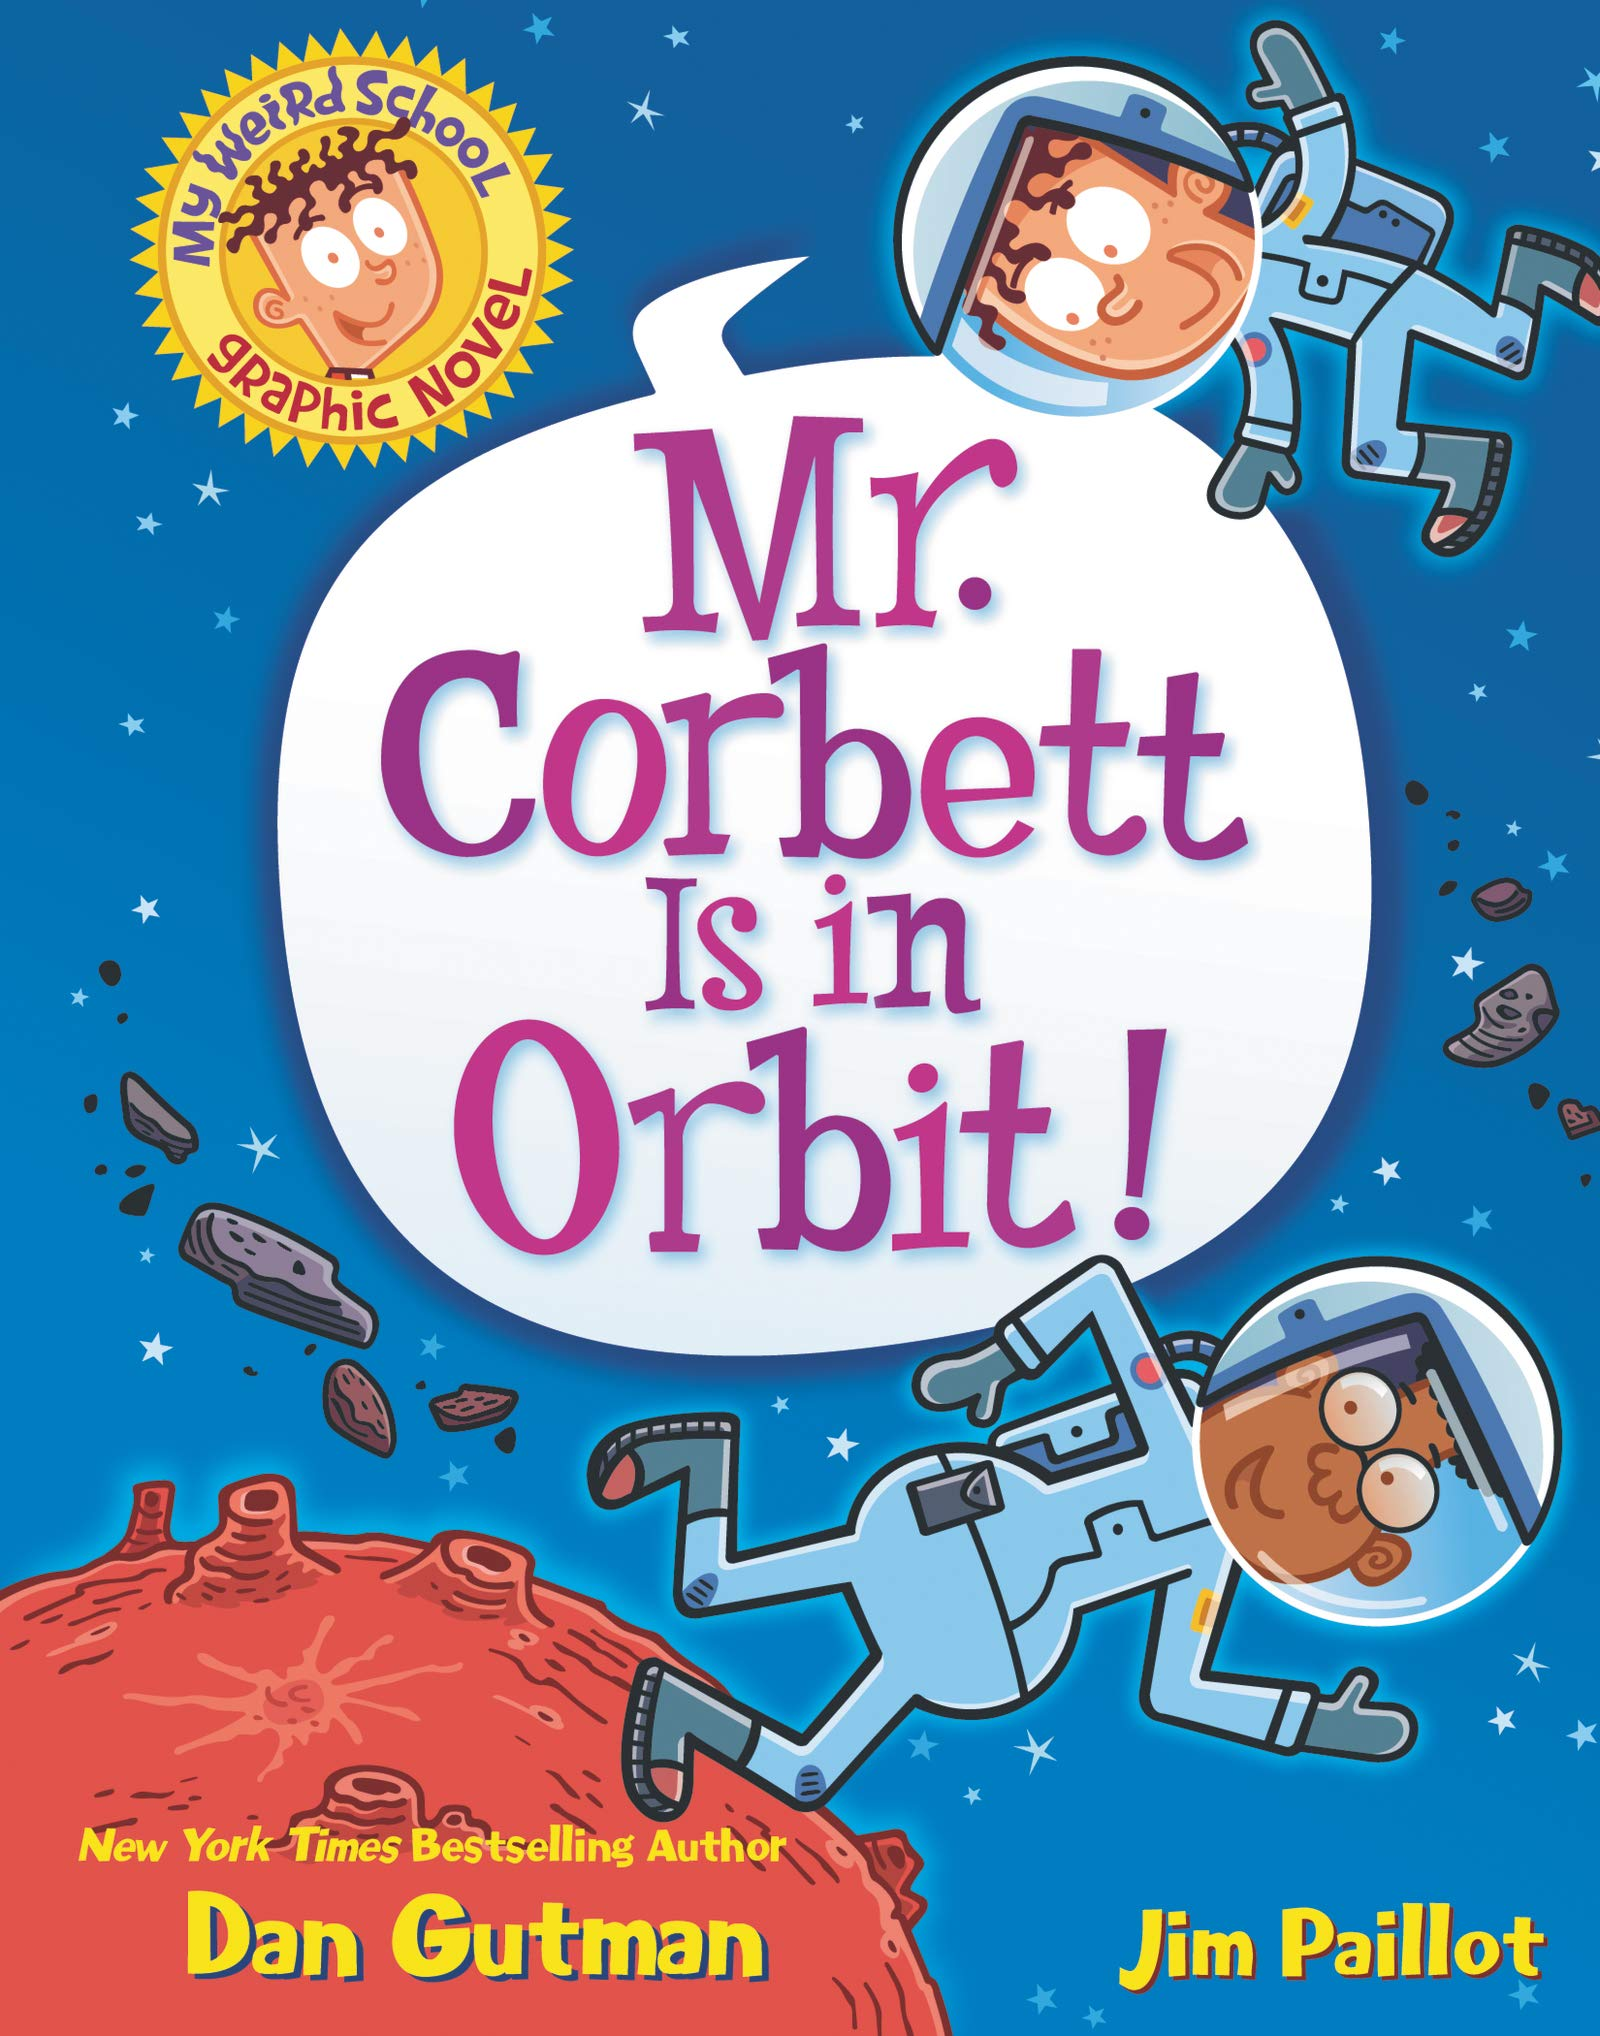 My Weird School Graphic Novel: Mr. Corbett Is in Orbit!